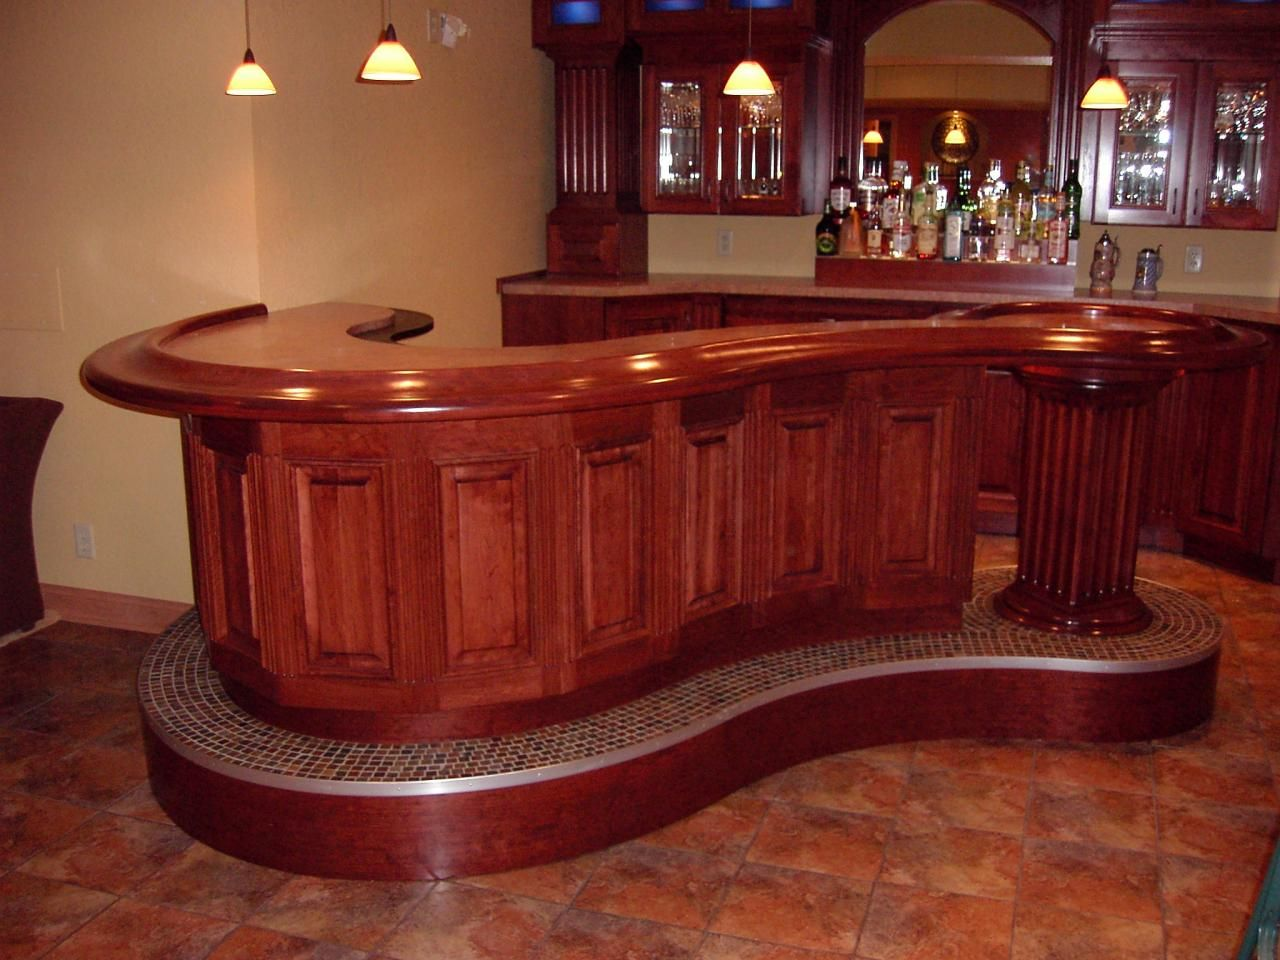 Top 10 Home Bars   bars  Home bar designs Bars for home Custom home bars